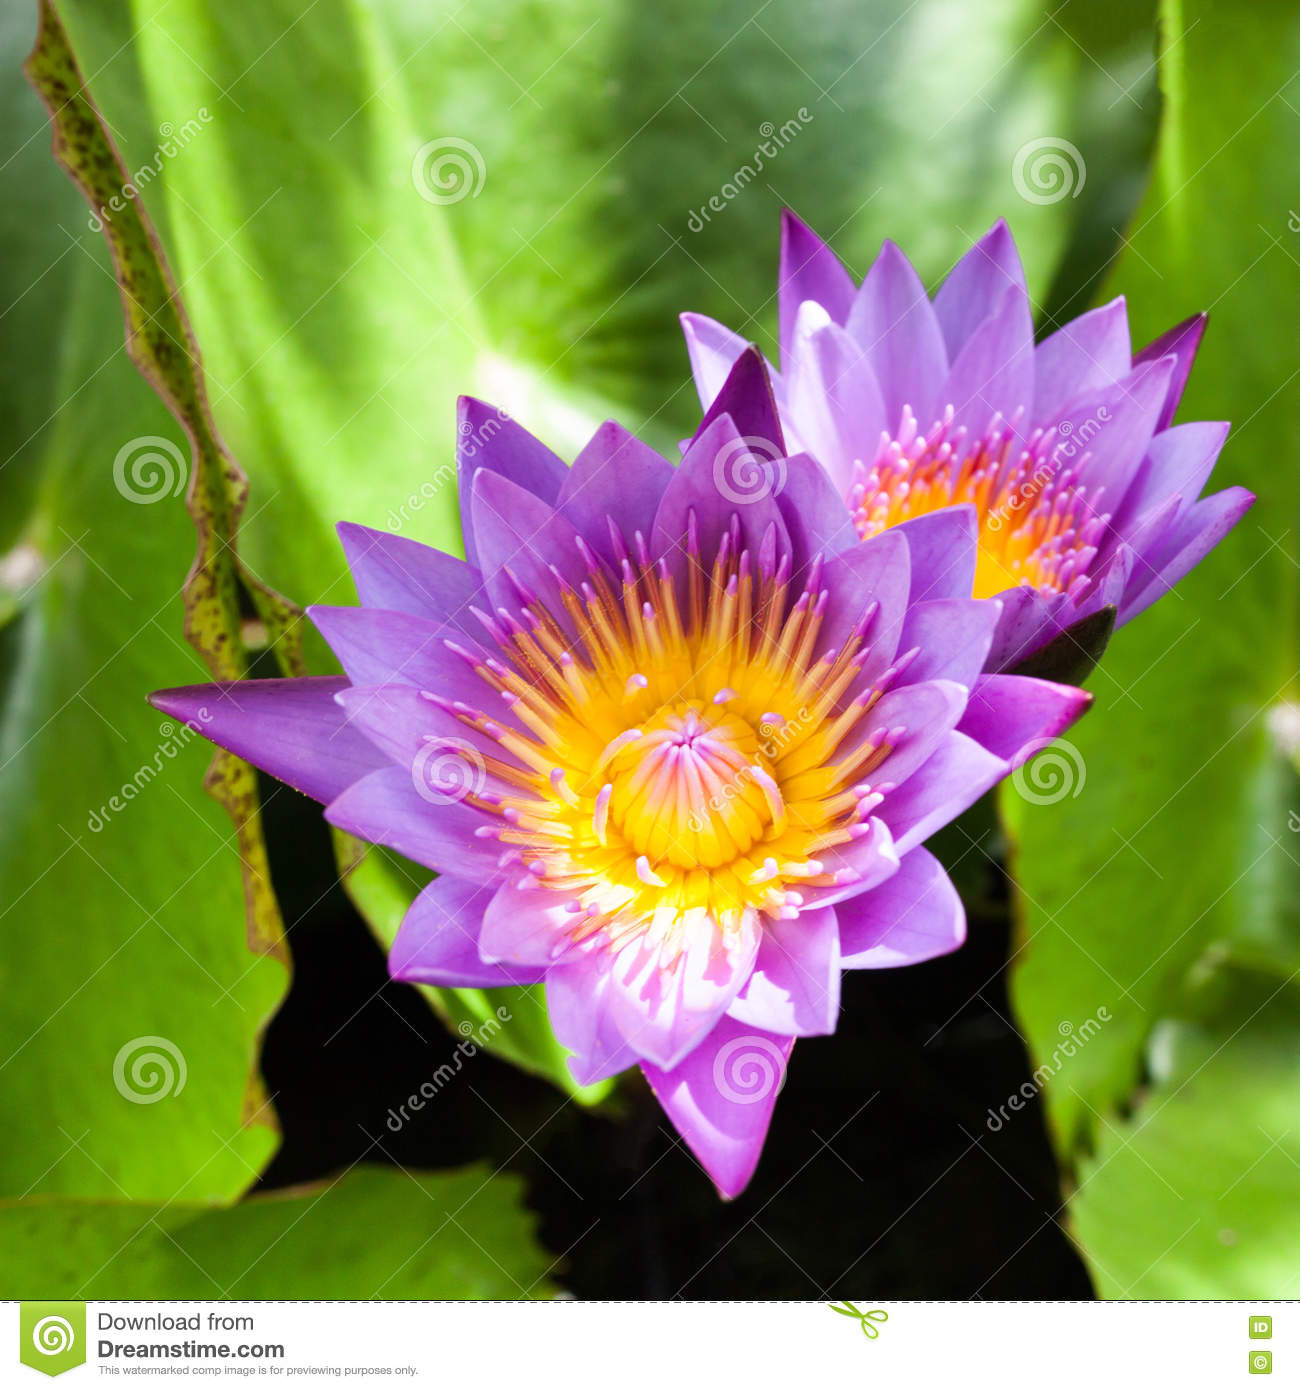 Beautiful Lotus Flower Saturated Colors And Vibrant Detail Make